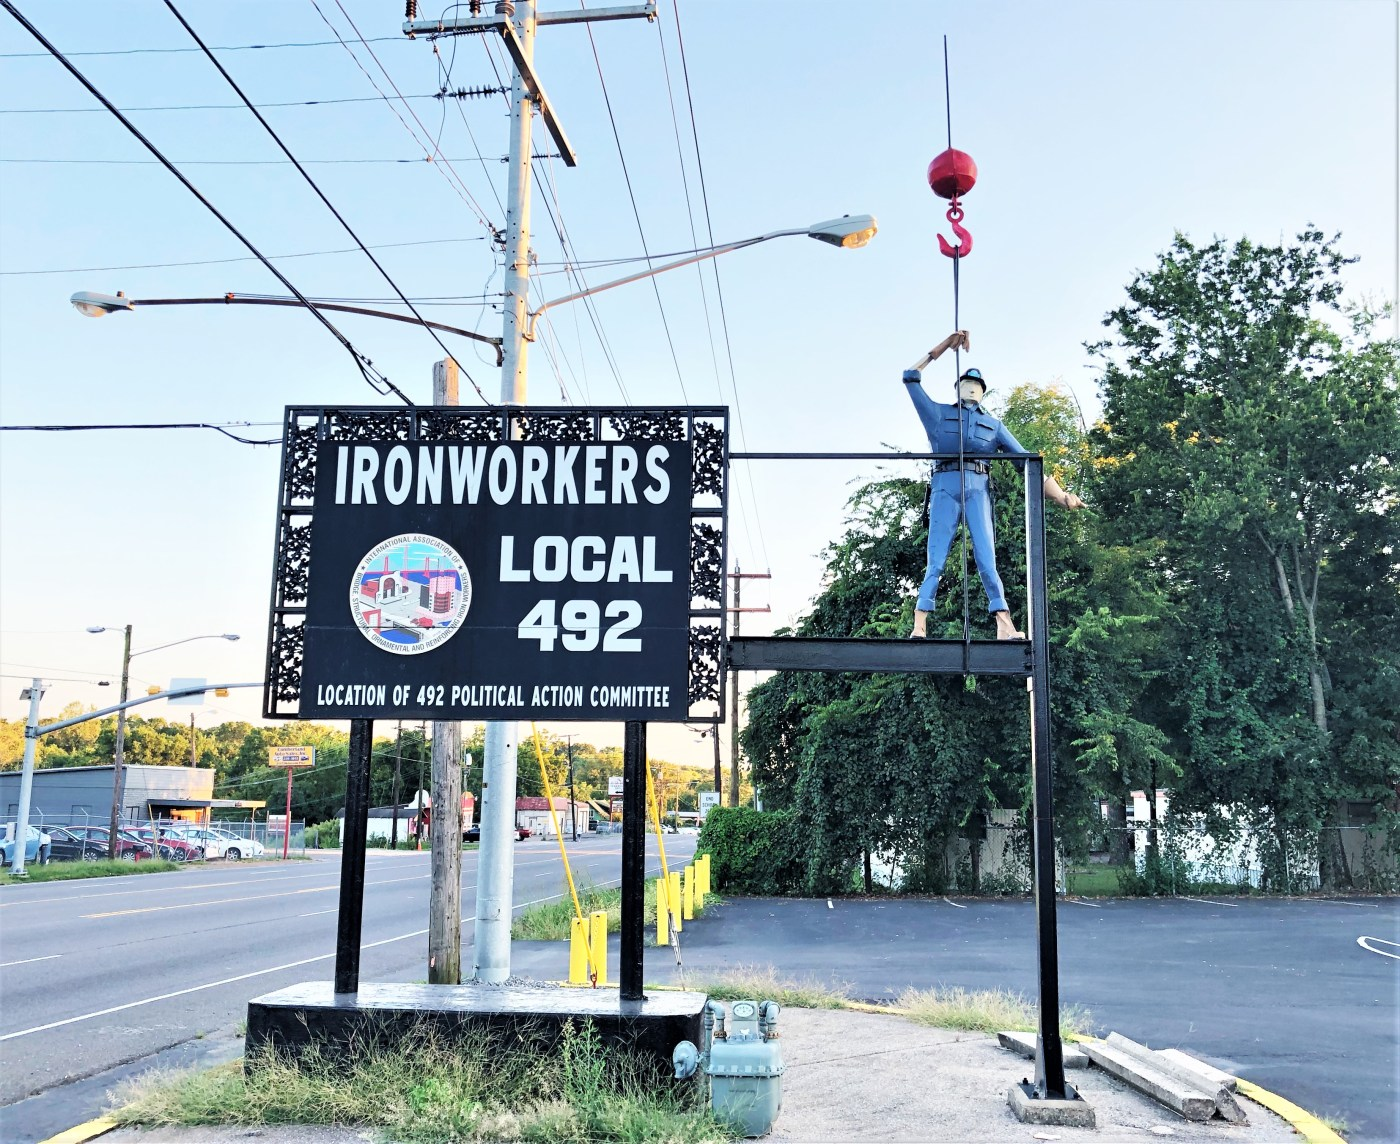 Ironworkers Sign street art Nashvile